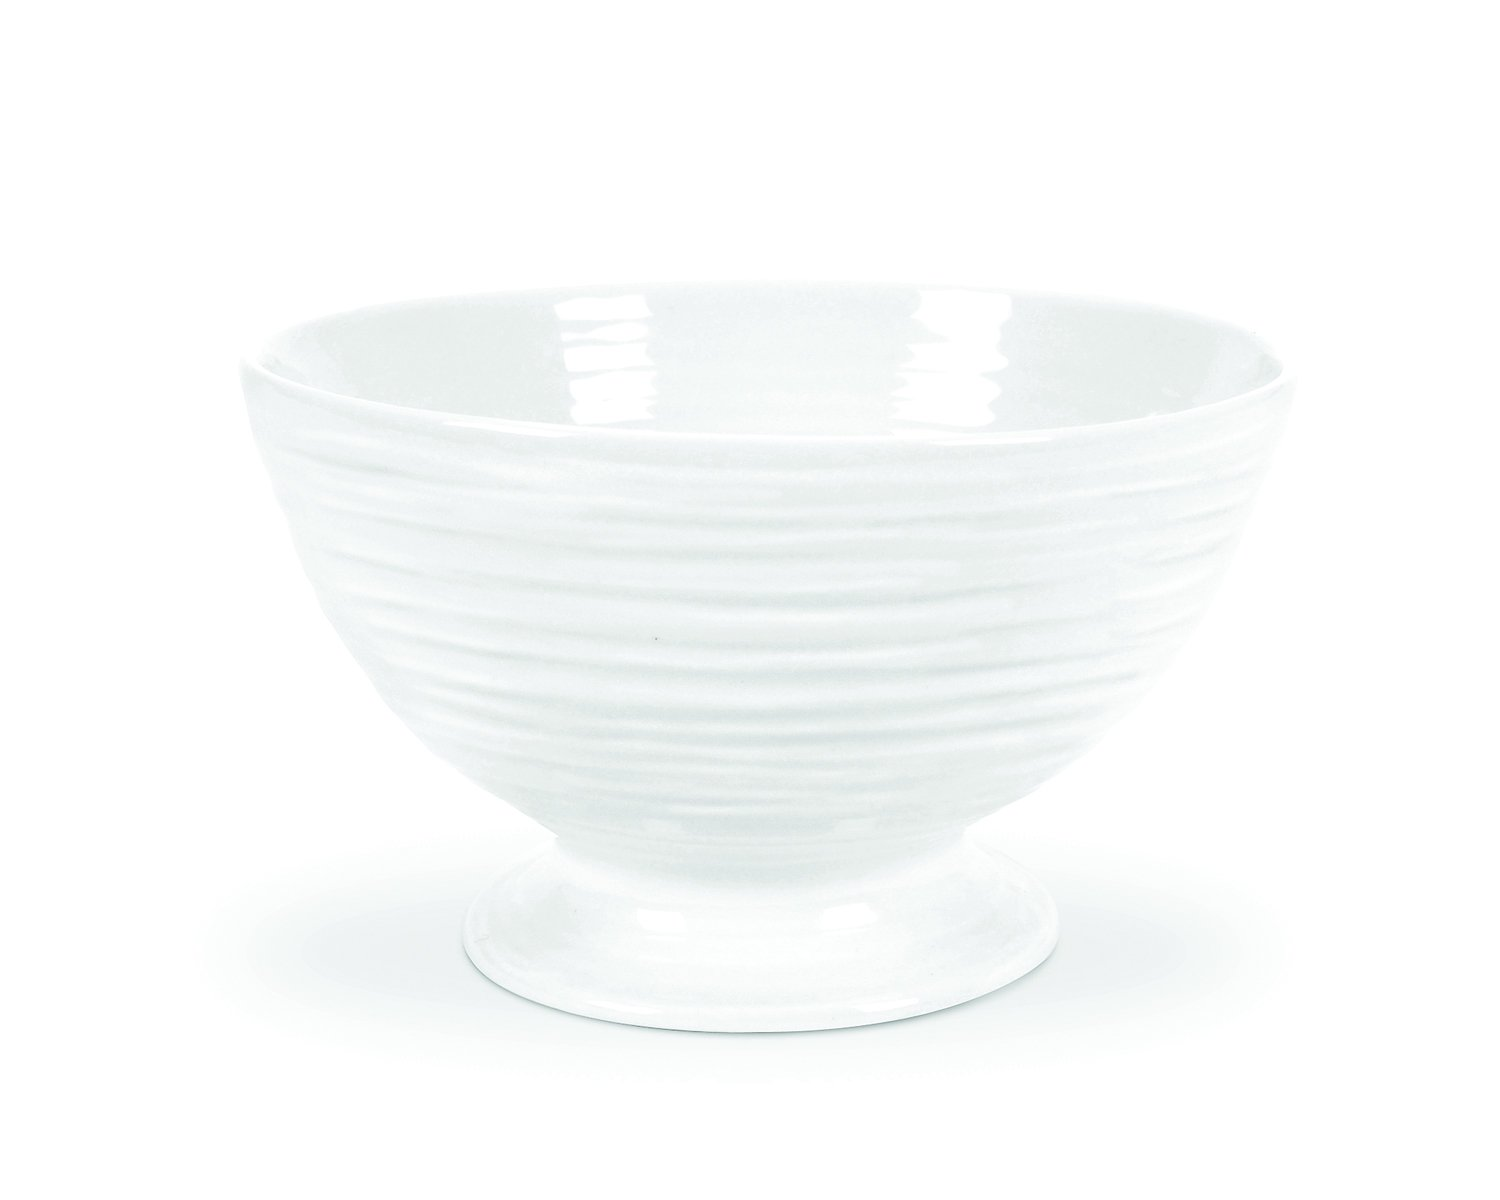 Portmeirion Sophie Conran White Footed Bowl Portmeirion USA 446175